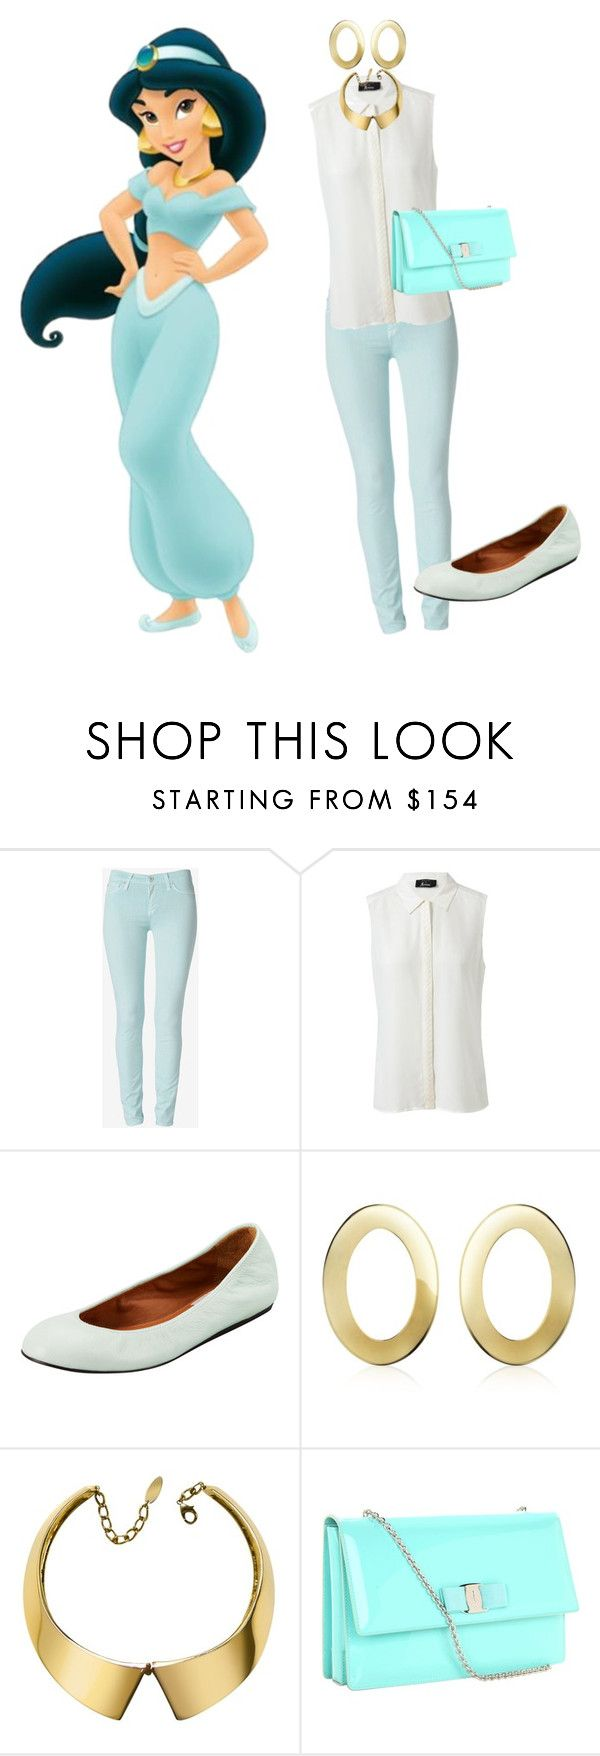 """""""Disney princesses' new clothes:Modern Jasmine"""" by blackqueen123 ❤ liked on Polyvore featuring Hudson Jeans, GUESS by Marciano, Lanvin, Mita Marina Milano, Giuseppe Zanotti, Salvatore Ferragamo and modern"""